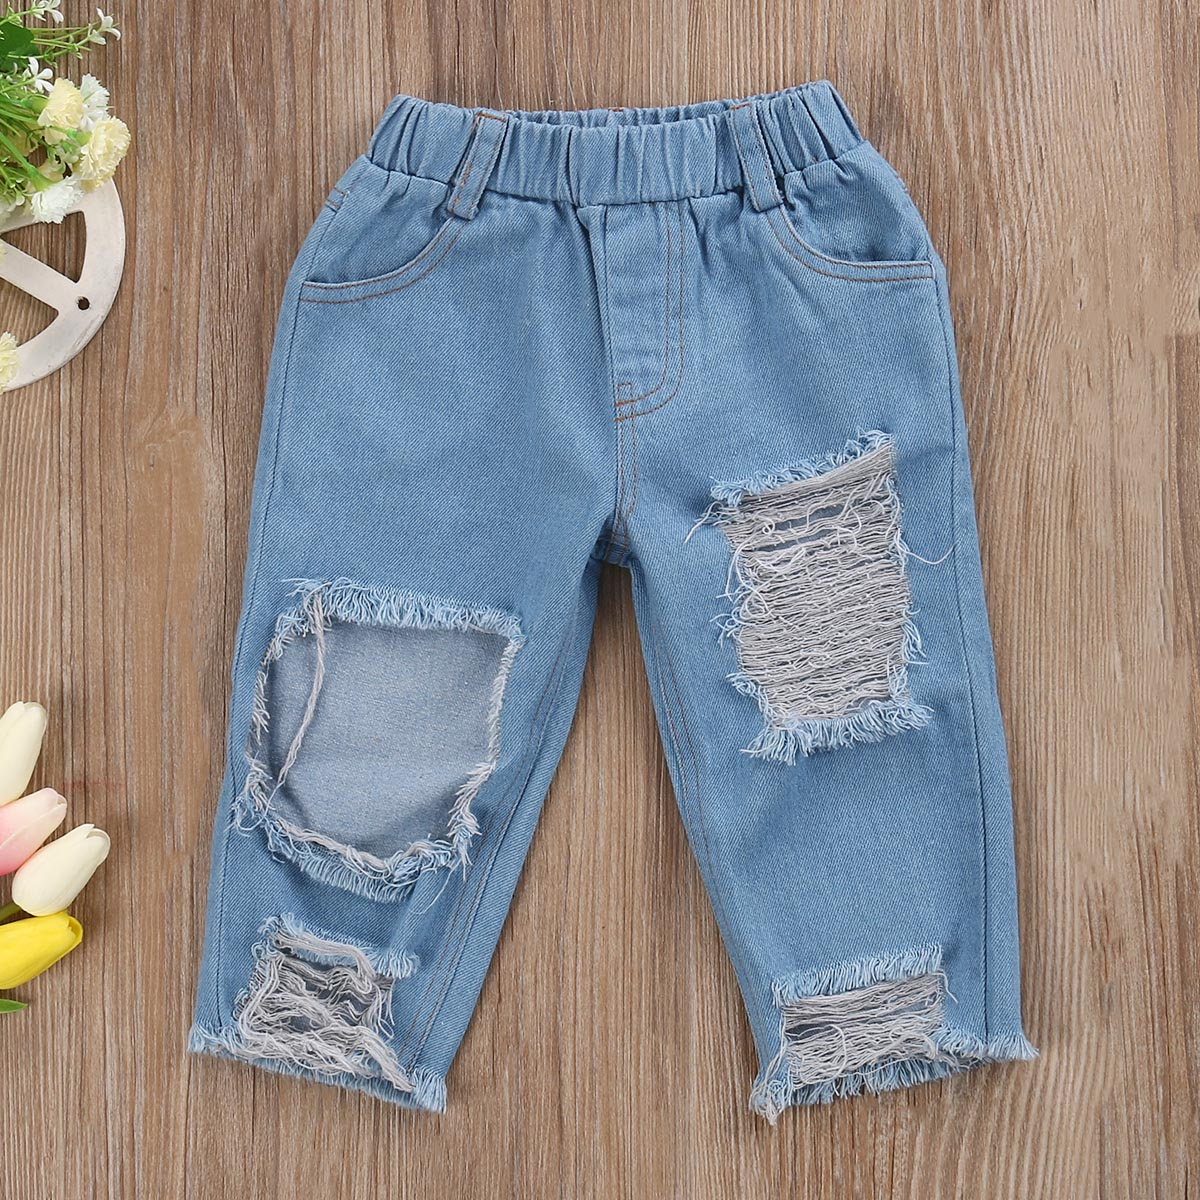 41488bd2d8118 Fashion Casual Toddler Kid Girls Clothing Off Shoulder Tops +Hole Denim  Pants Jeans Outfits Set Clothes-in Clothing Sets from Mother   Kids on ...